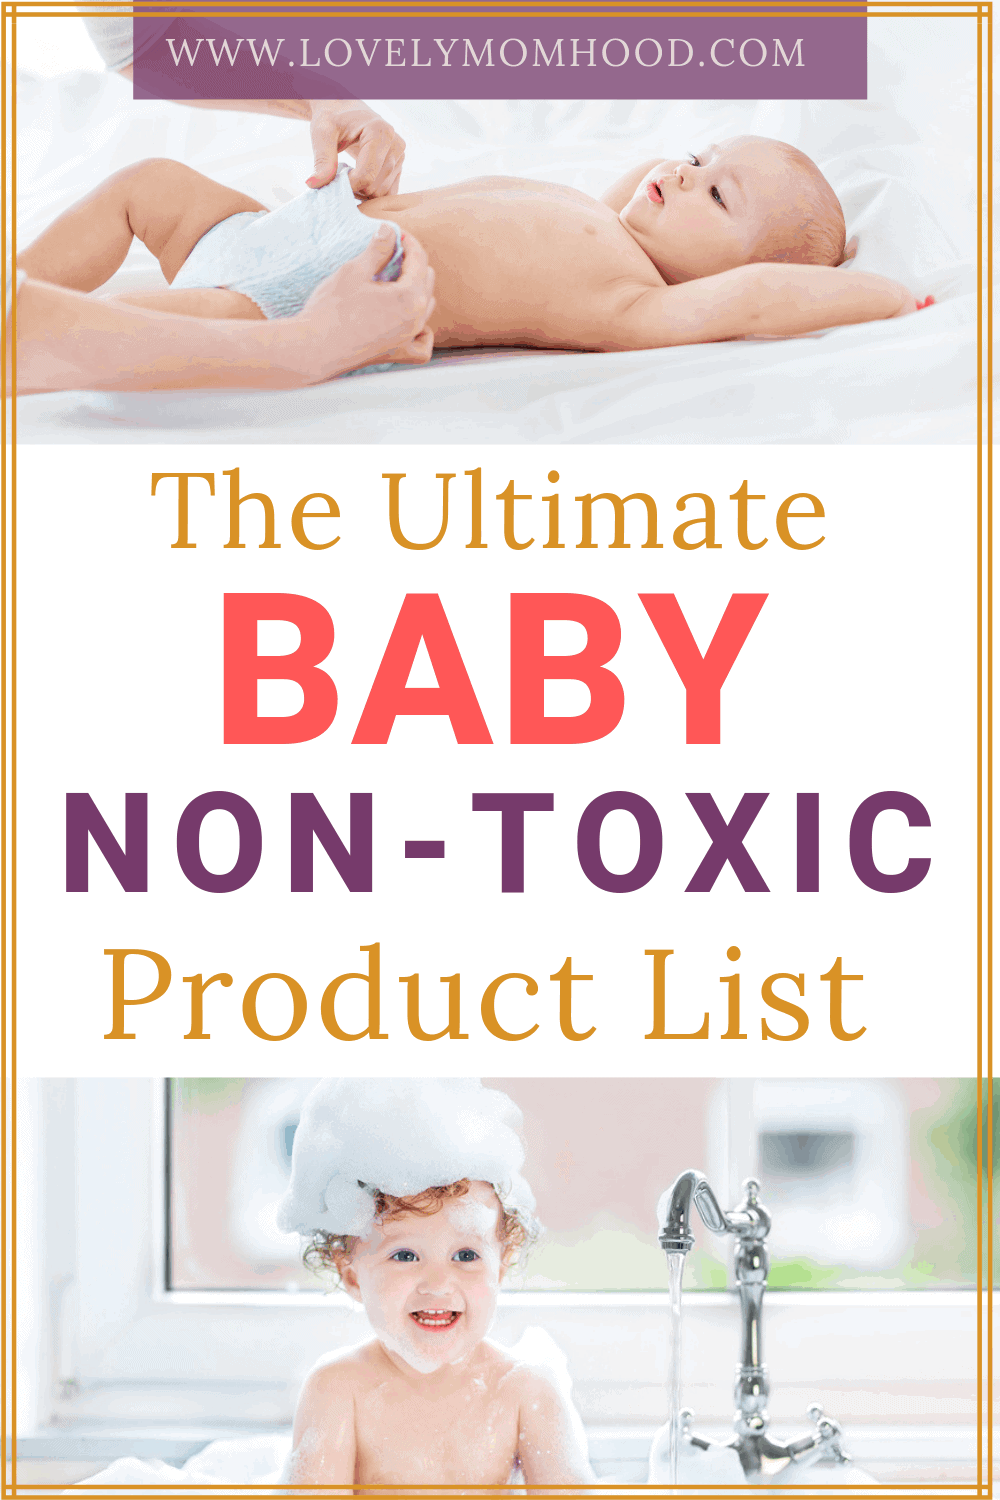 non-toxic and all natural baby products